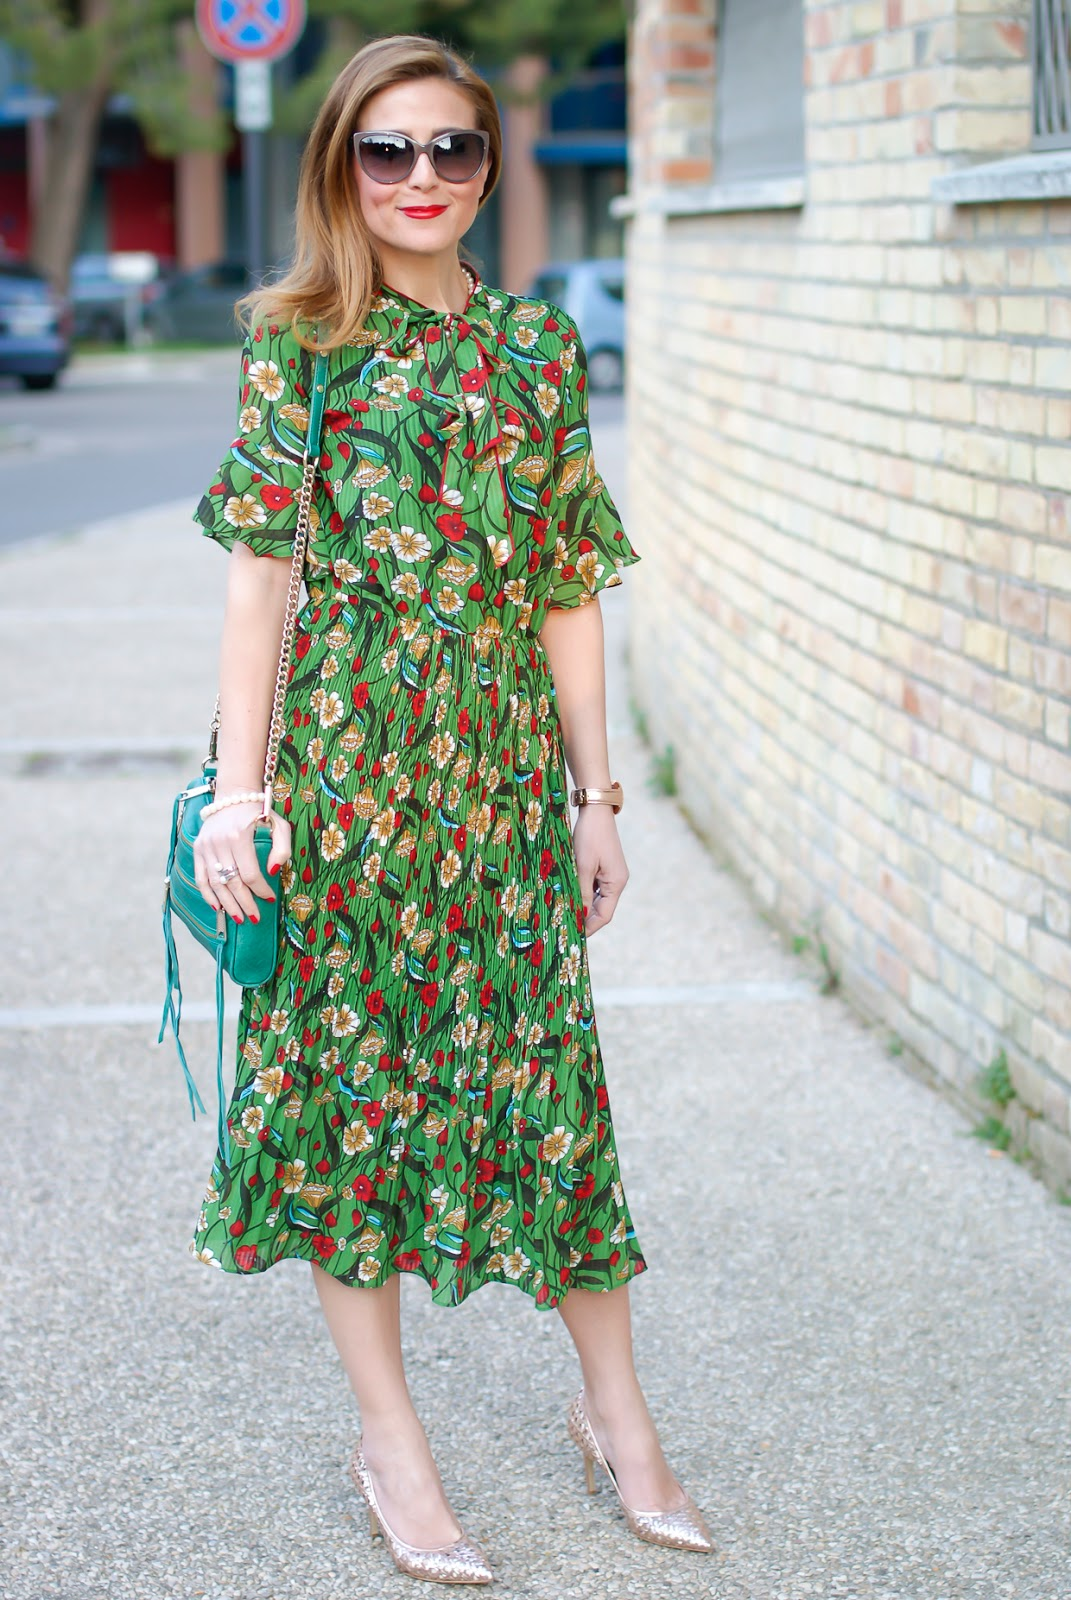 Metisu green pleated midi dress and Giancarlo Paoli shoes on Fashion and Cookies fashion blog, fashion blogger style